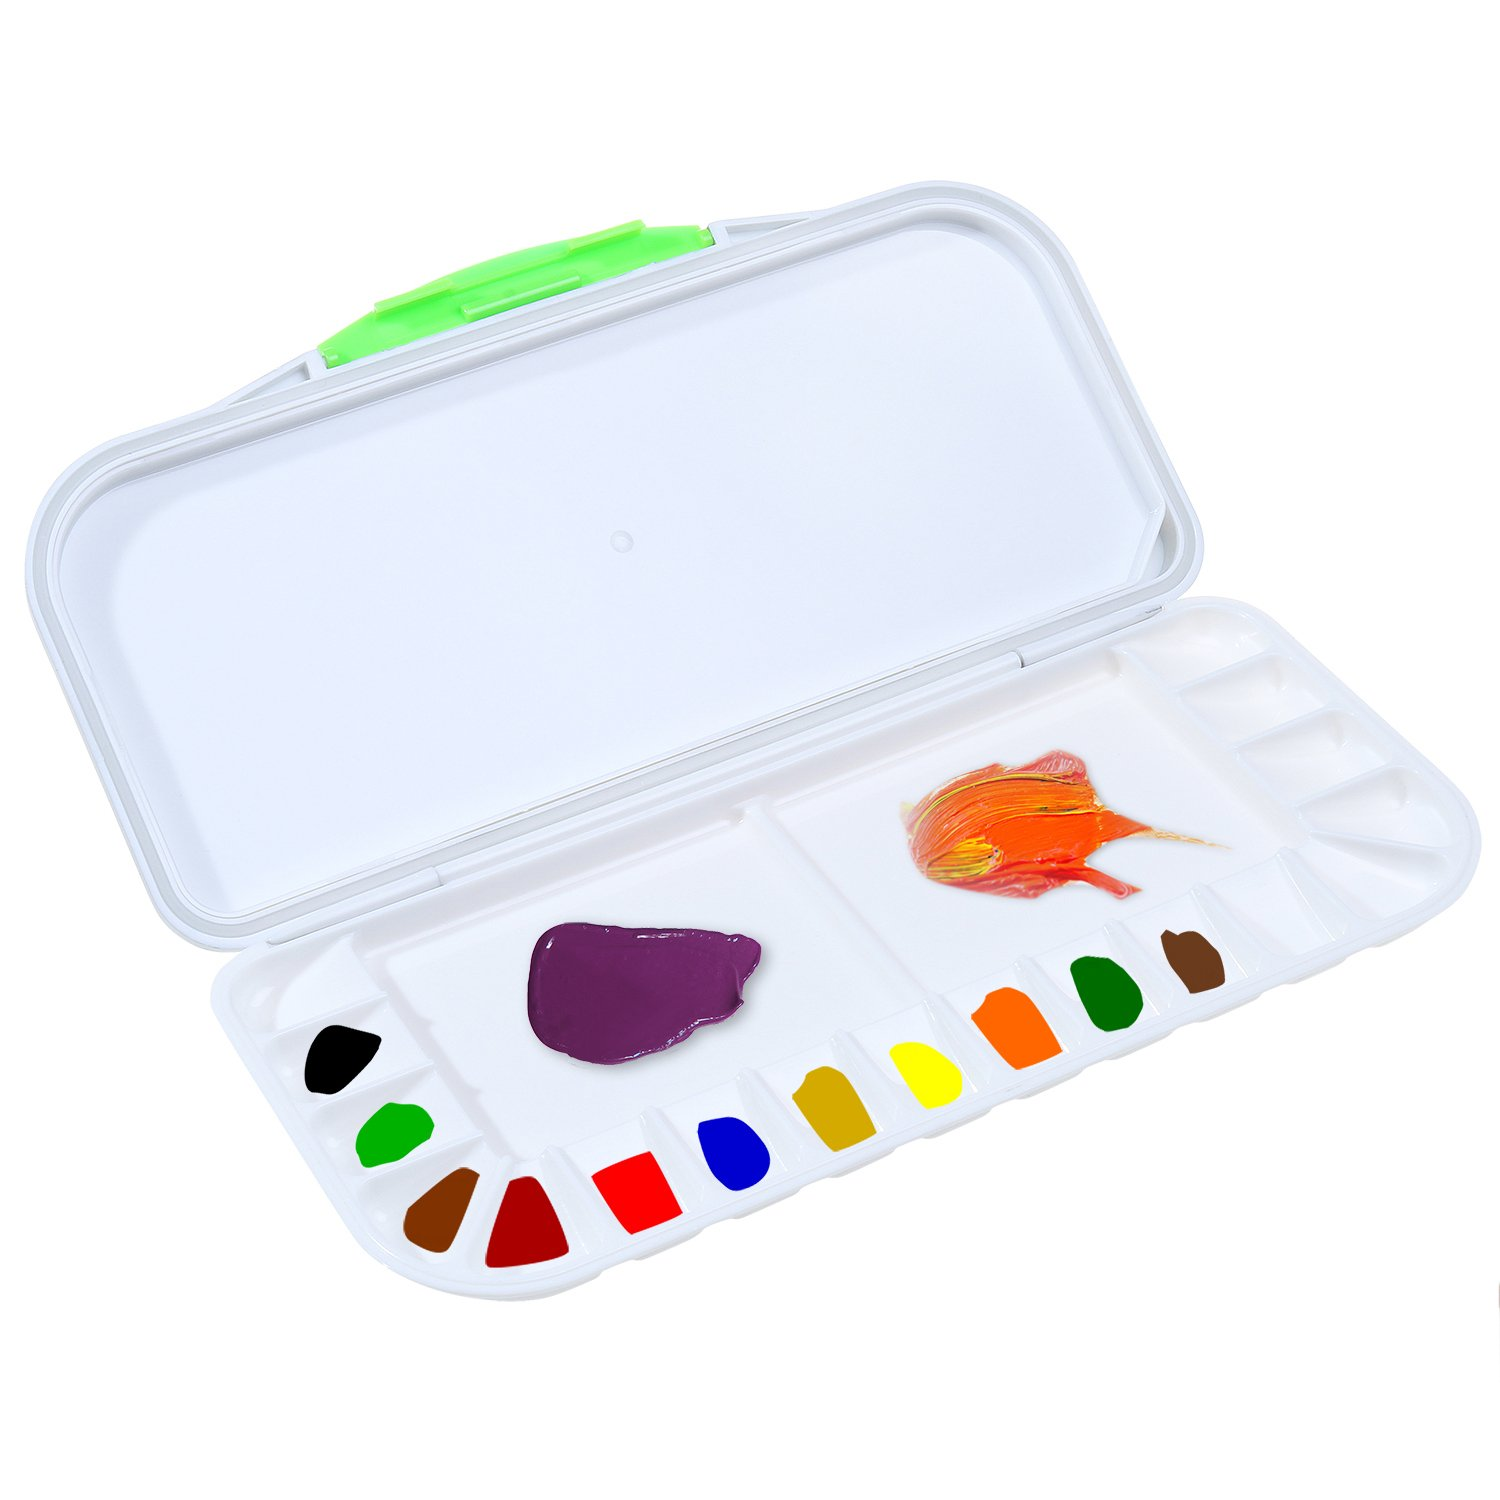 Traveling Airtight Watercolor Palette 18 Wells Watercolor Acrylic Paint Tray Palette Leak Proof for Watercolor Pigment Storage Color Mixing (10.63 x 5.1 x 0.9 inch)